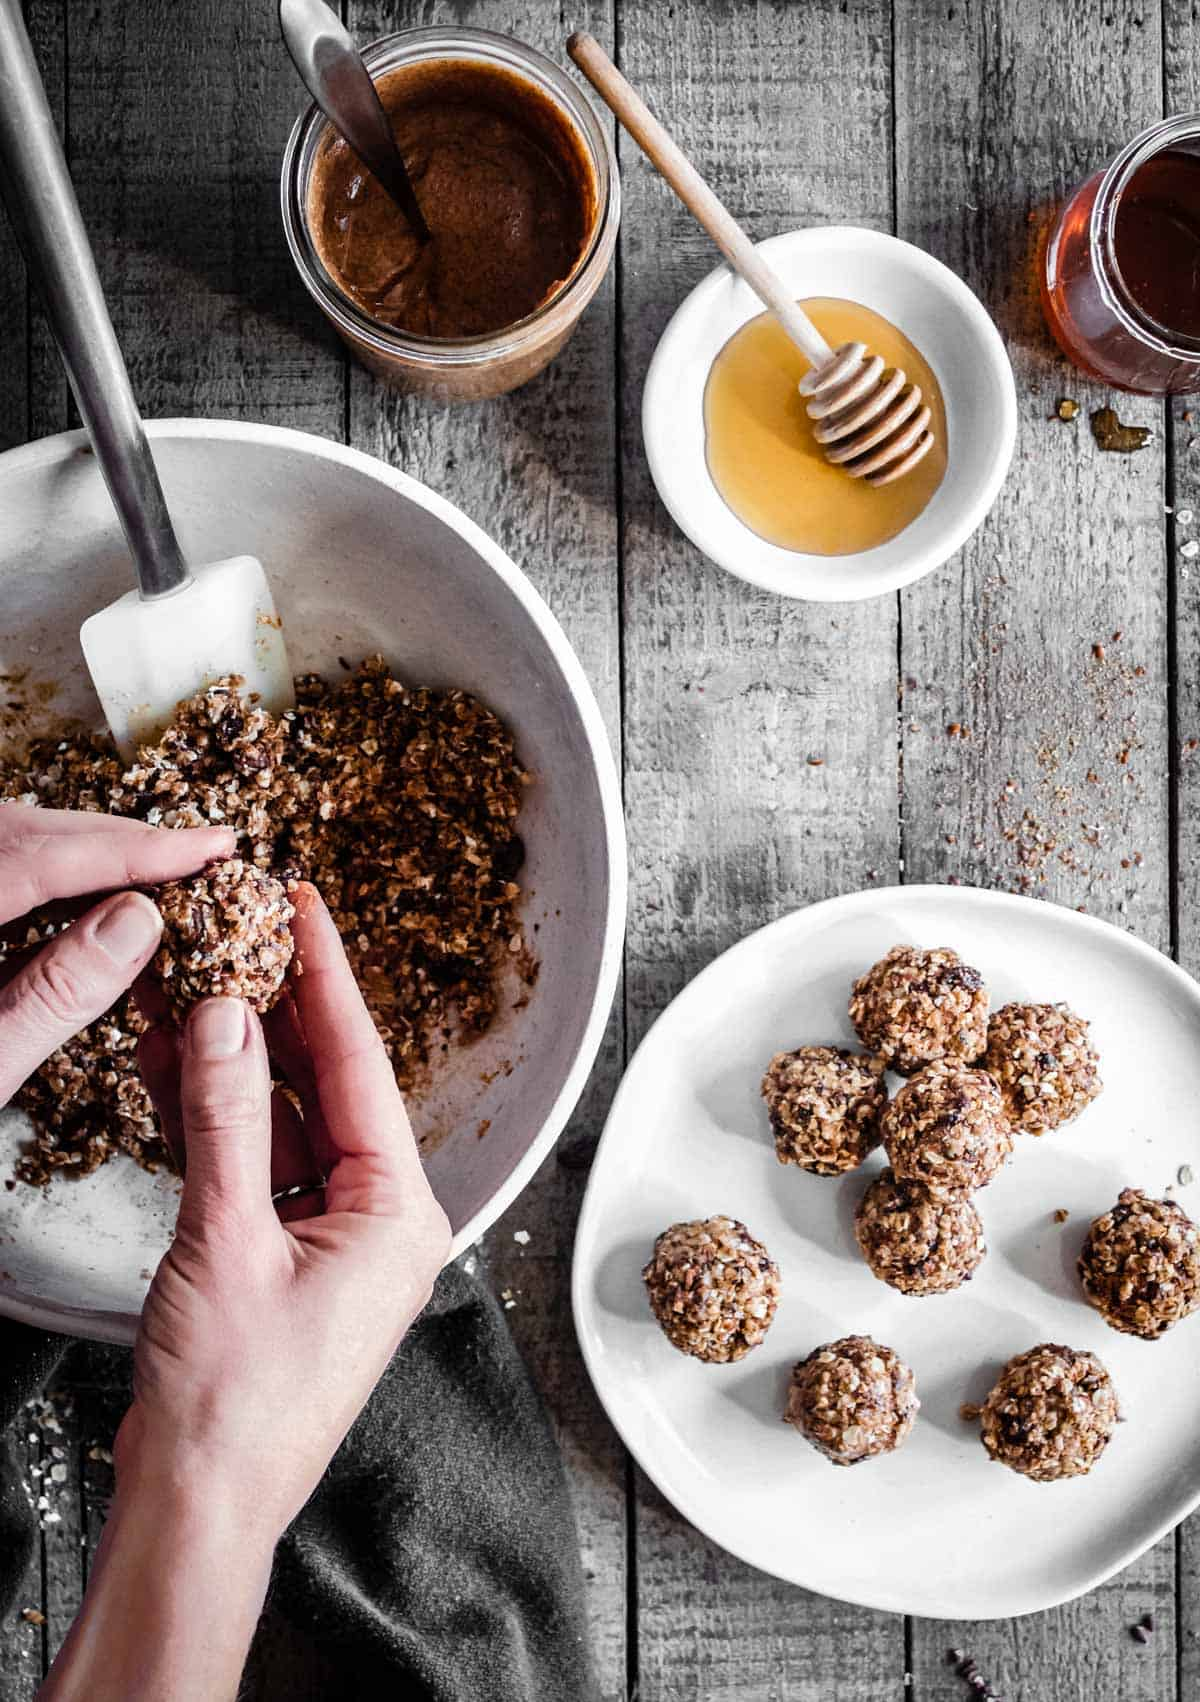 Two hands are forming combined ingredients into no bake oatmeal cookie energy bites.